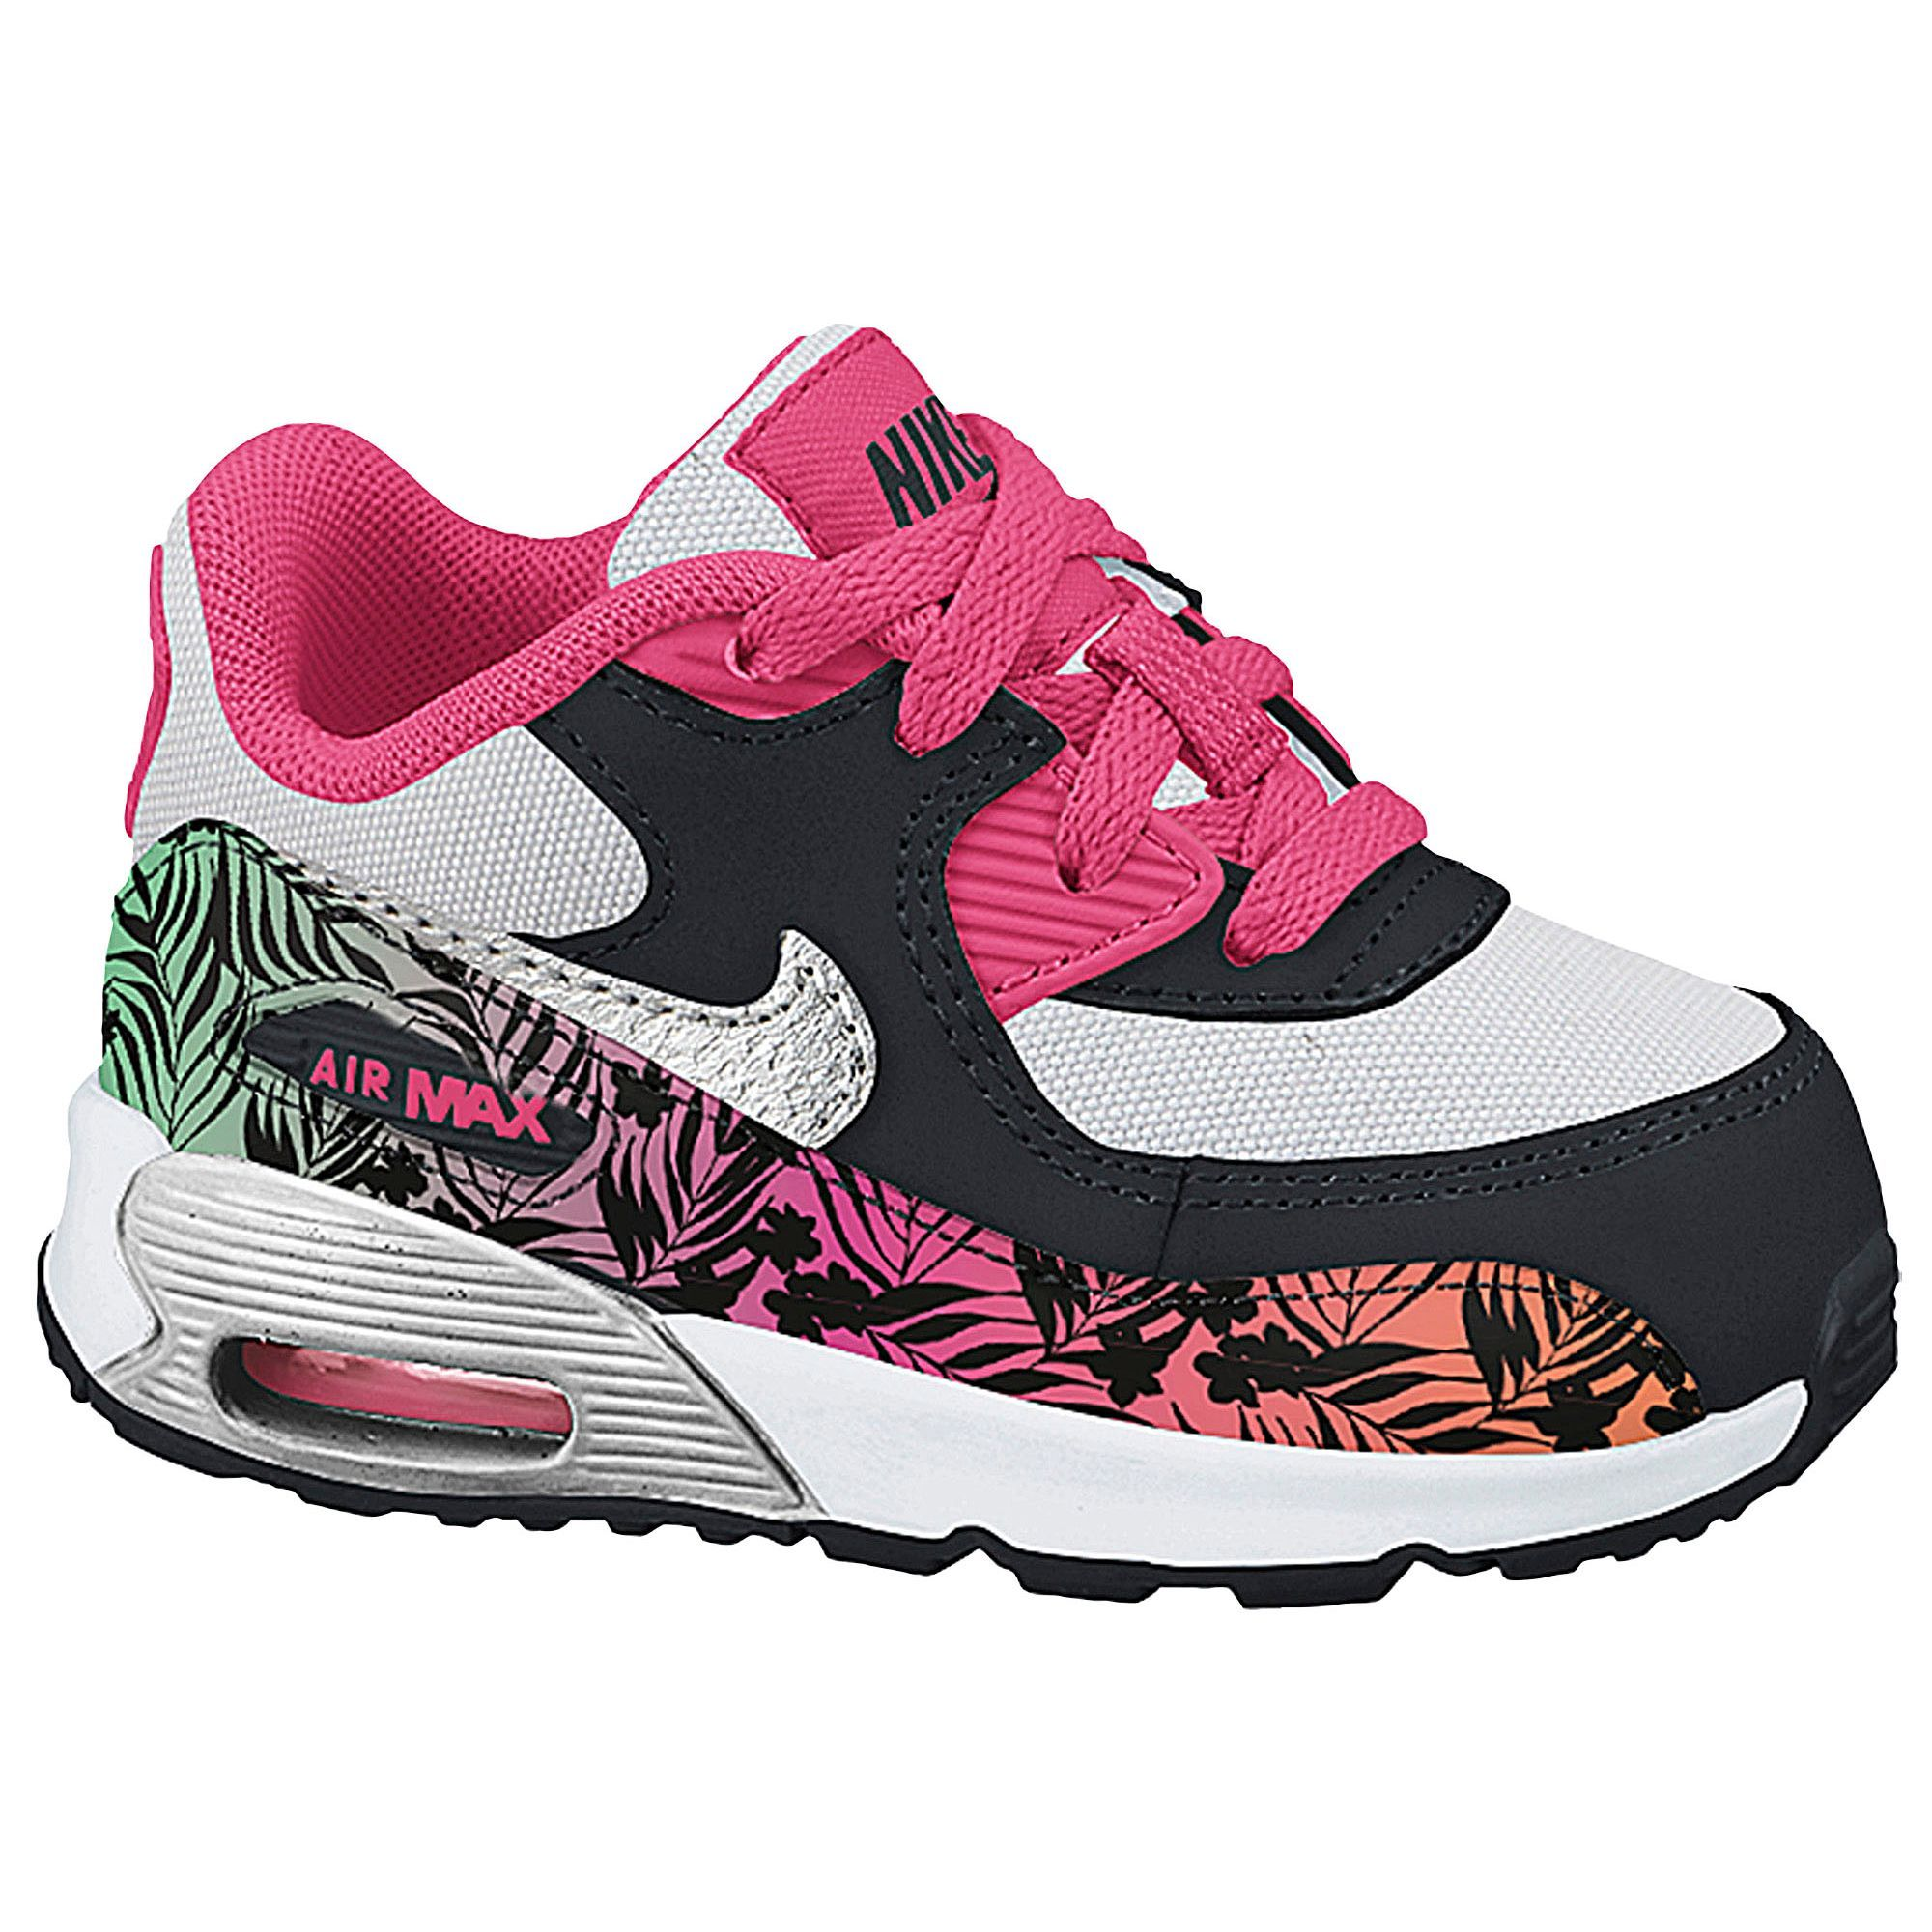 new style 7b975 ced09 coupon code air max 90 shoes pinterest air max 90 and nike air max a875f  460d9